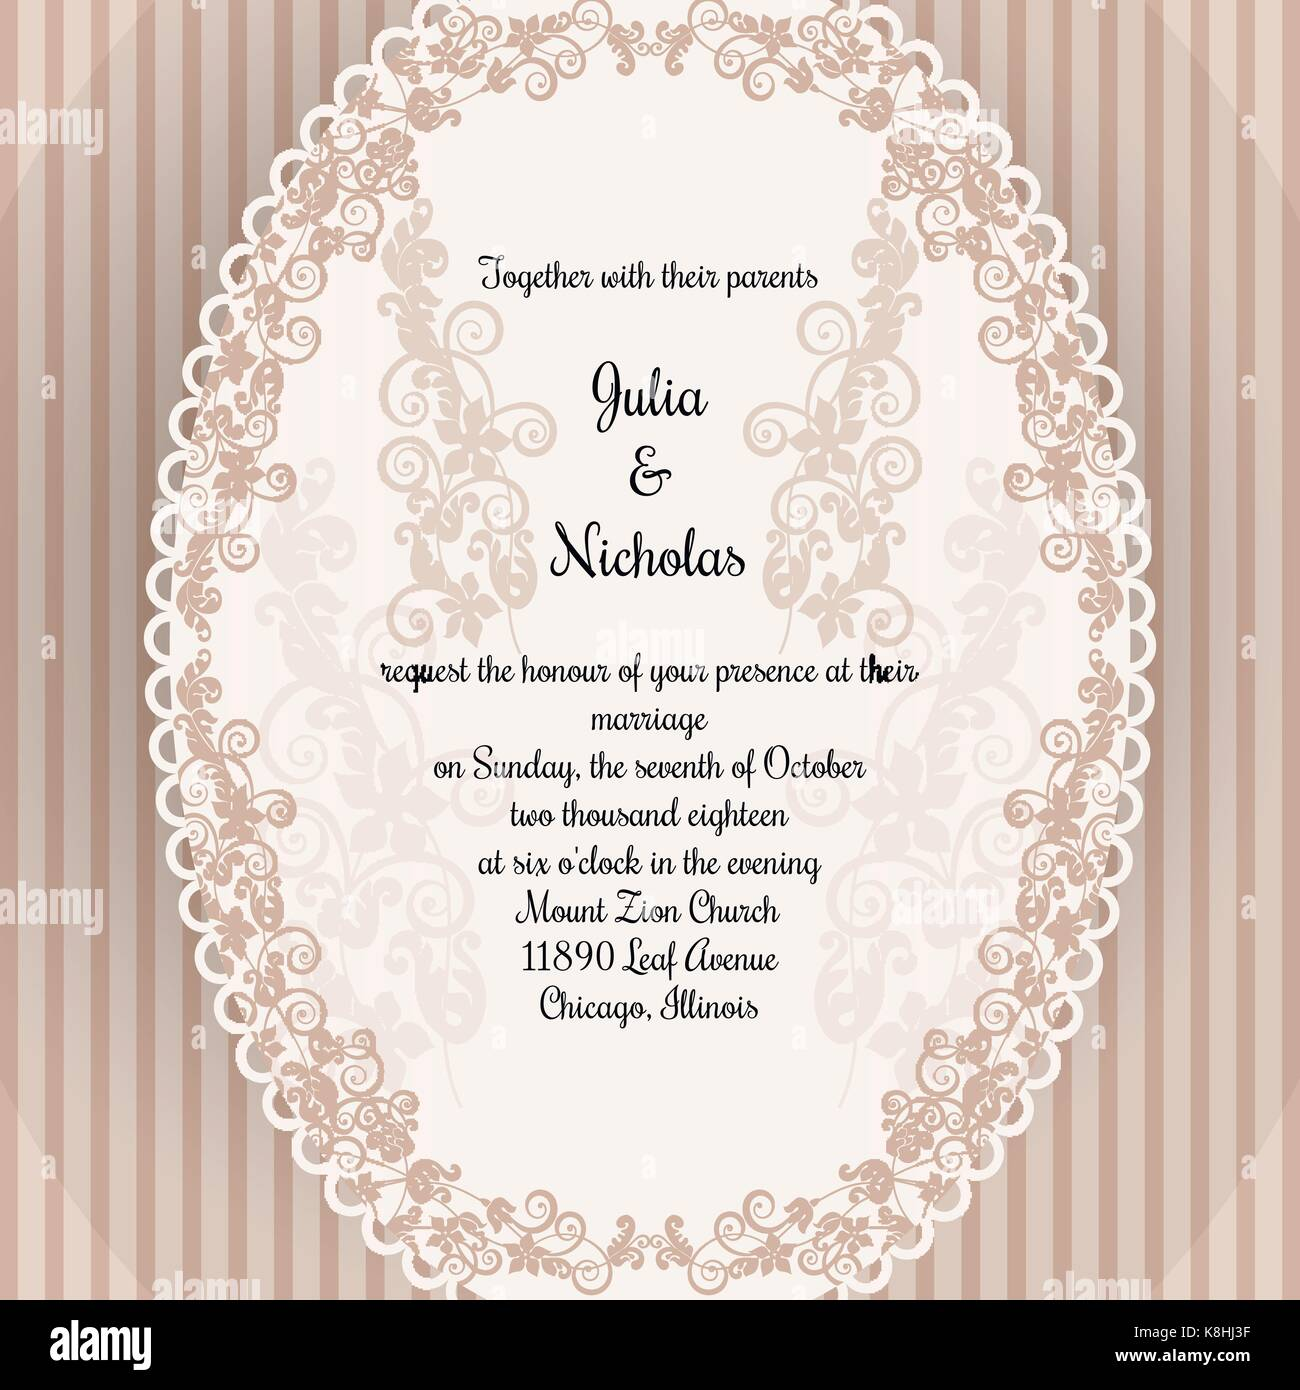 Wedding card template decorated with oval frame and flower ornament ...